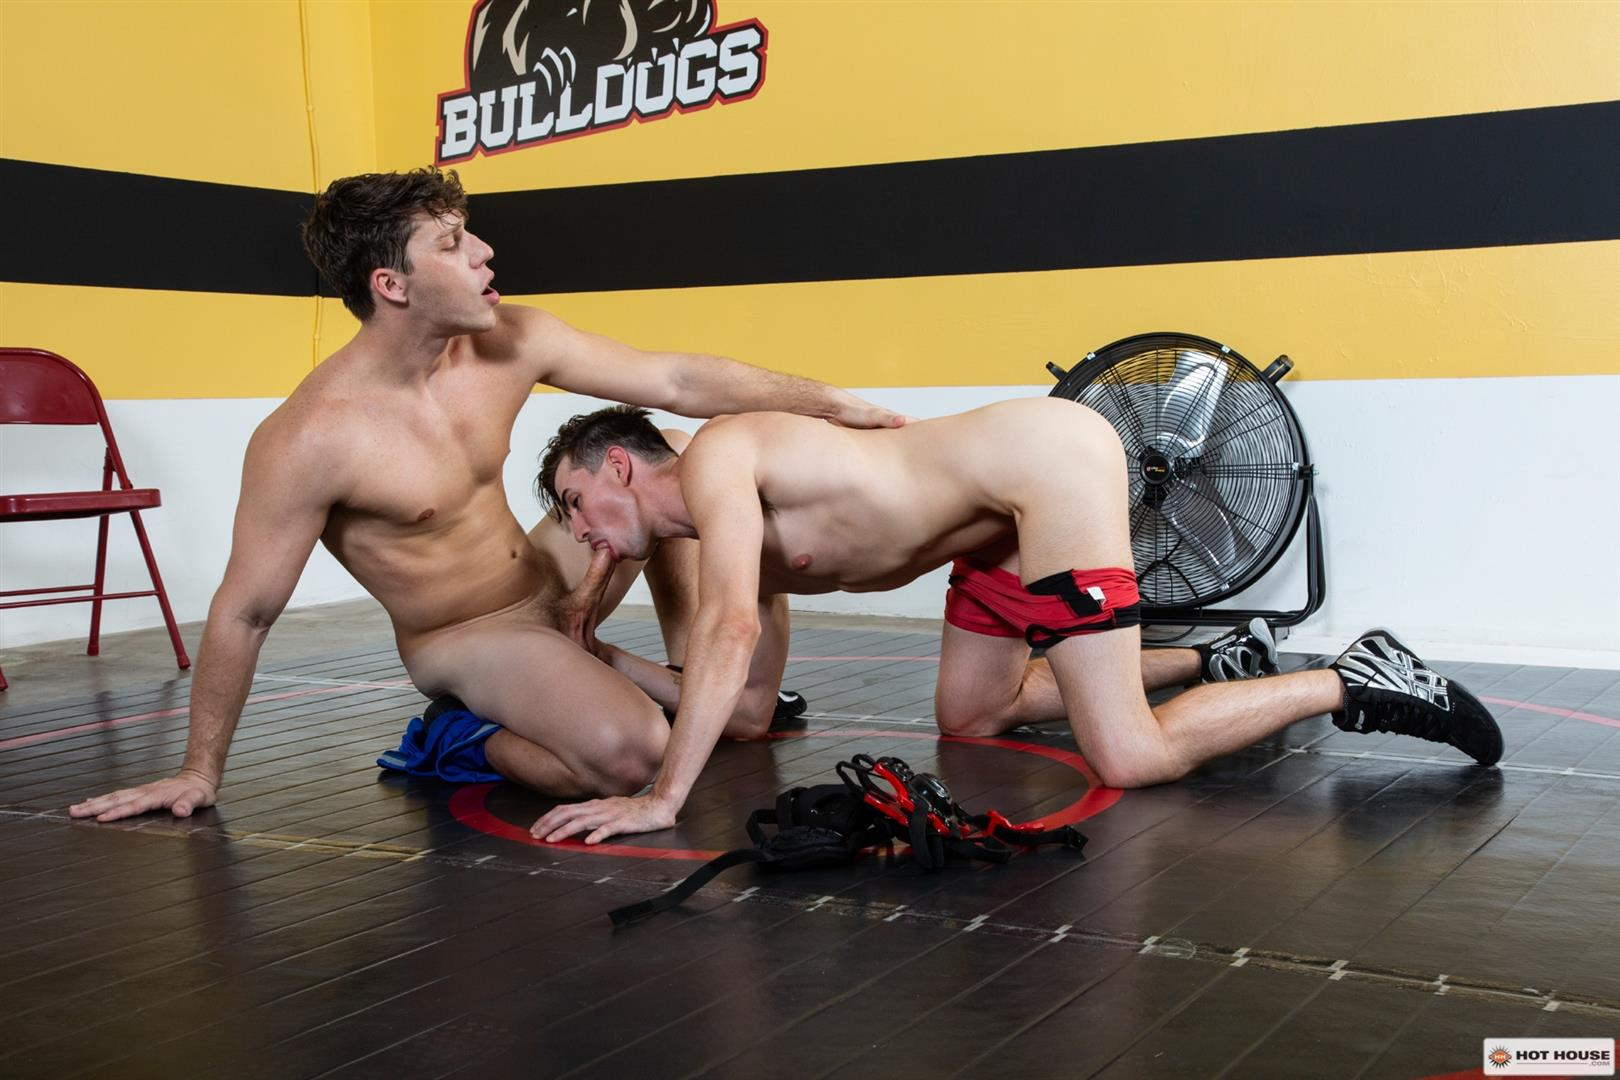 Hot-House-Jack-Hunter-and-Paul-Canon-Bareback-Flip-Fucking-Gay-Sex-07 Jack Hunter and Paul Canon Bareback Flip Fucking Wrestling Match